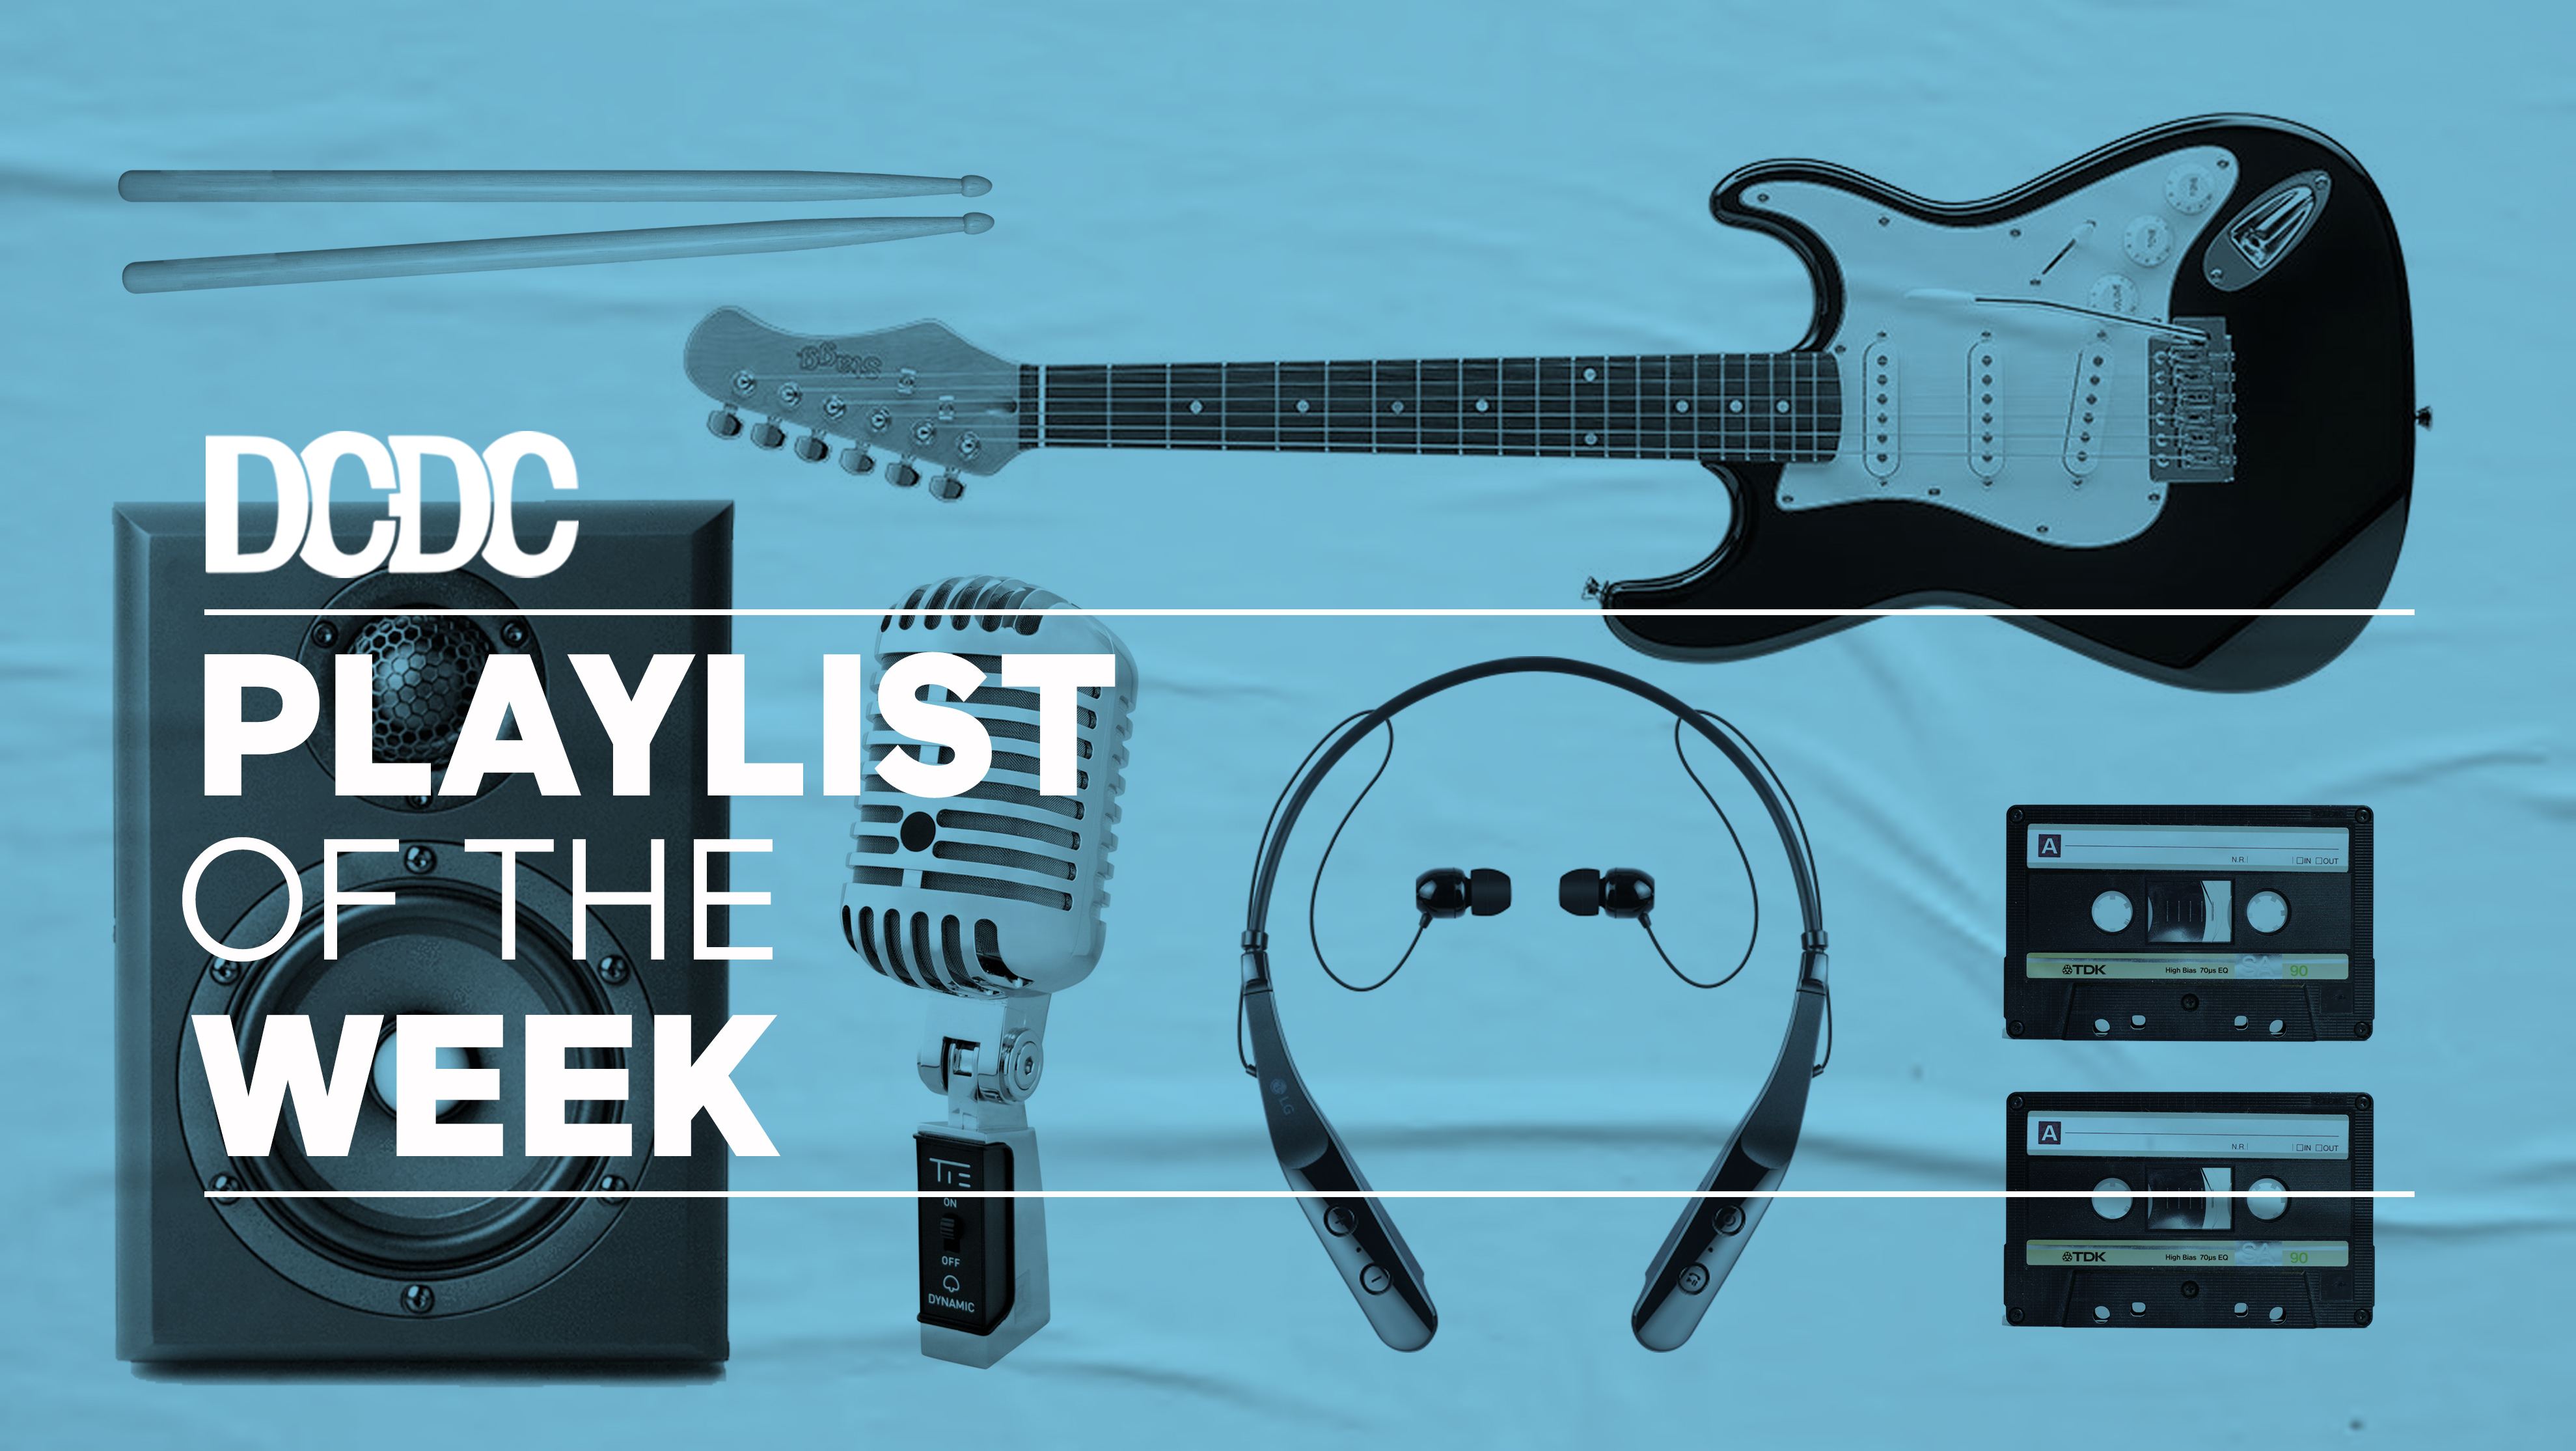 Playlist Of The Week (1 - 5 April 2019)